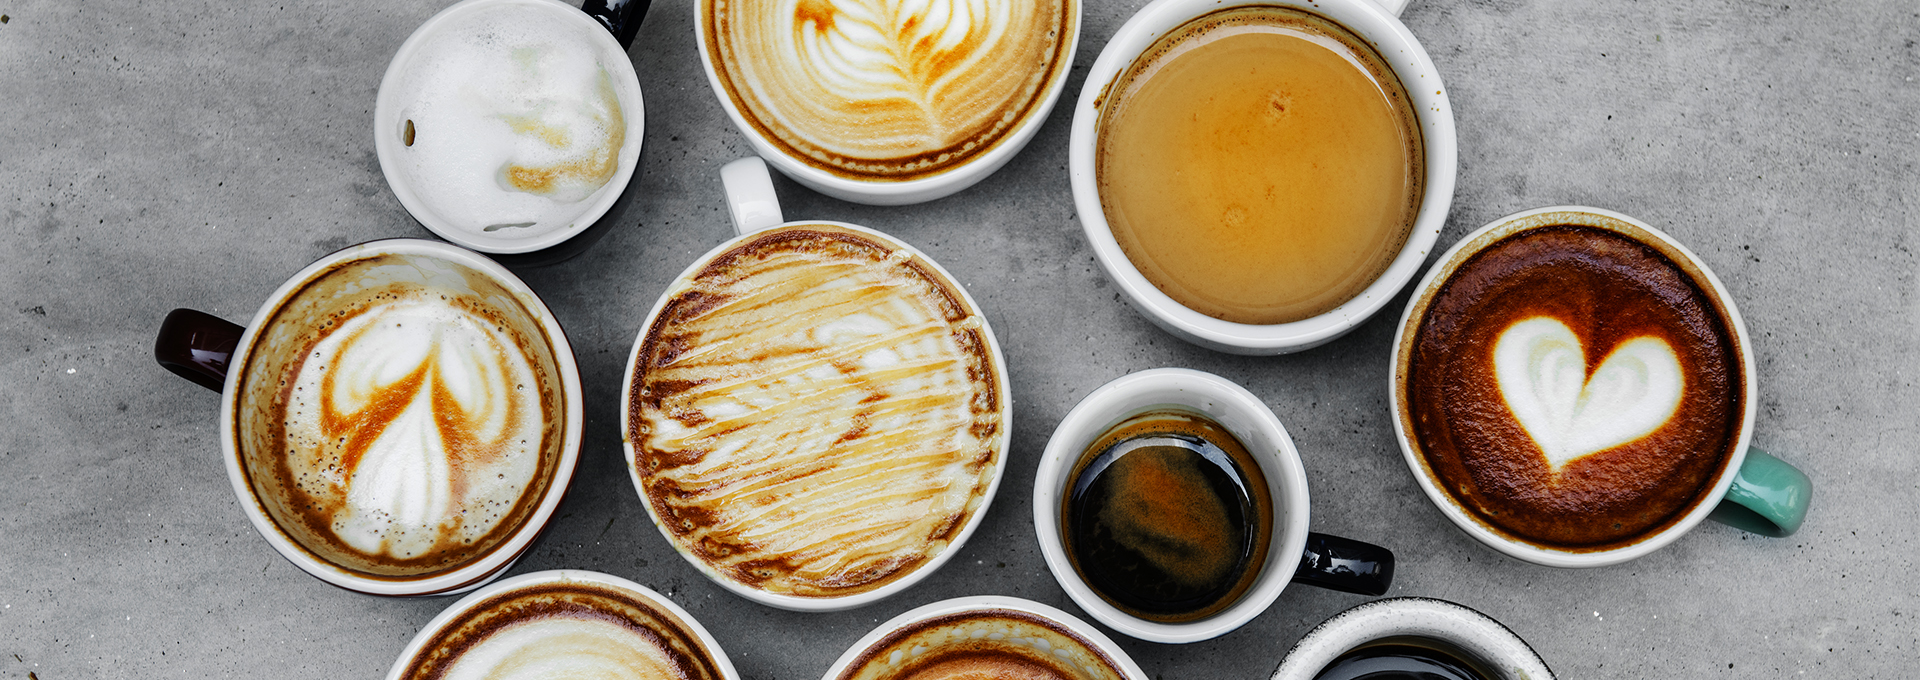 The 10 Best Cafes to Study near Alexander College in Vancouver!